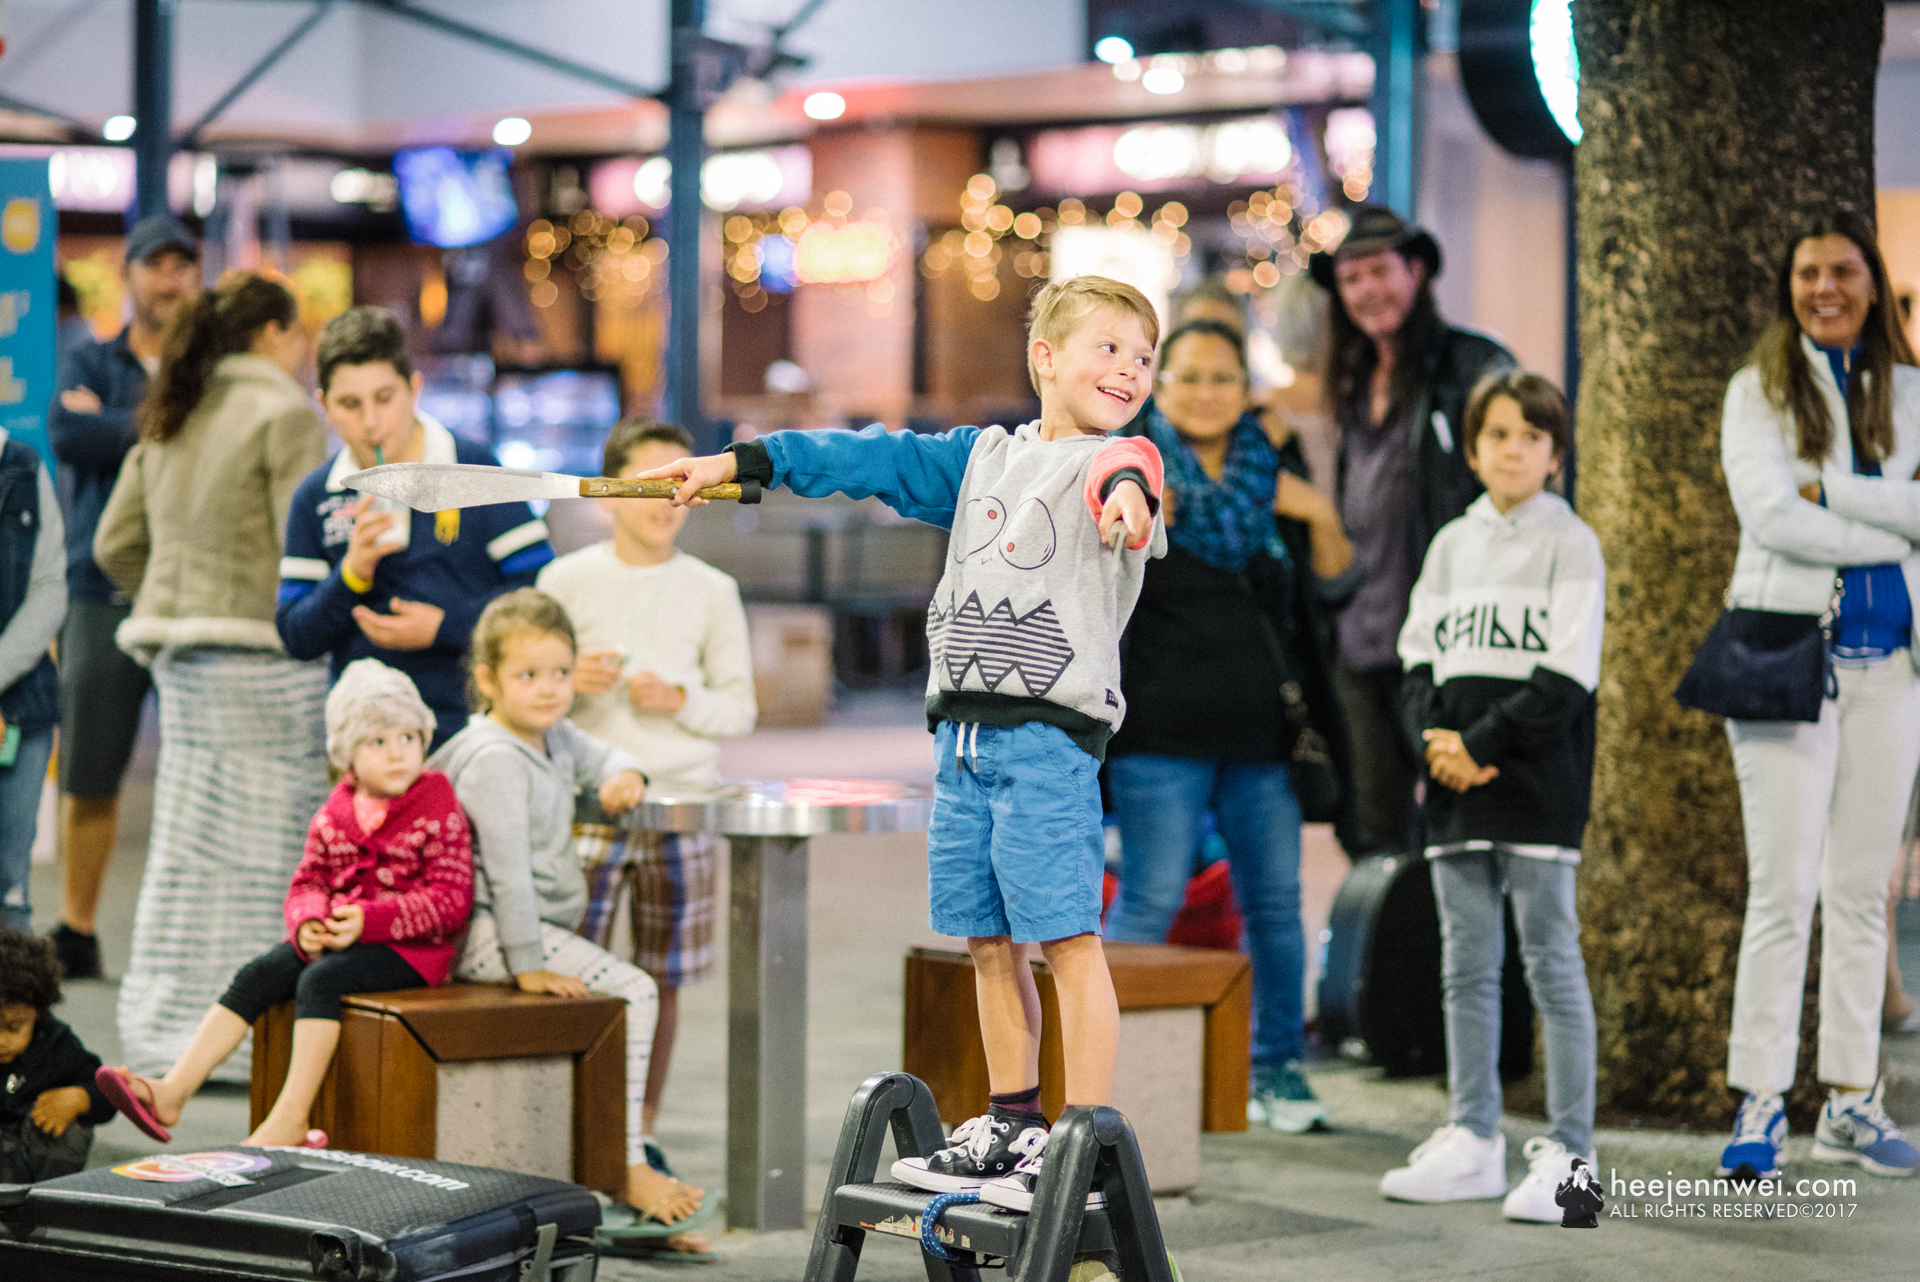 Surfers Paradise is like a cradle to Gold Coast's finest busking and street performance - the epicentre of Queensland's street performing culture. They even host a yearly street entertainment championship at Surfers Paradise.